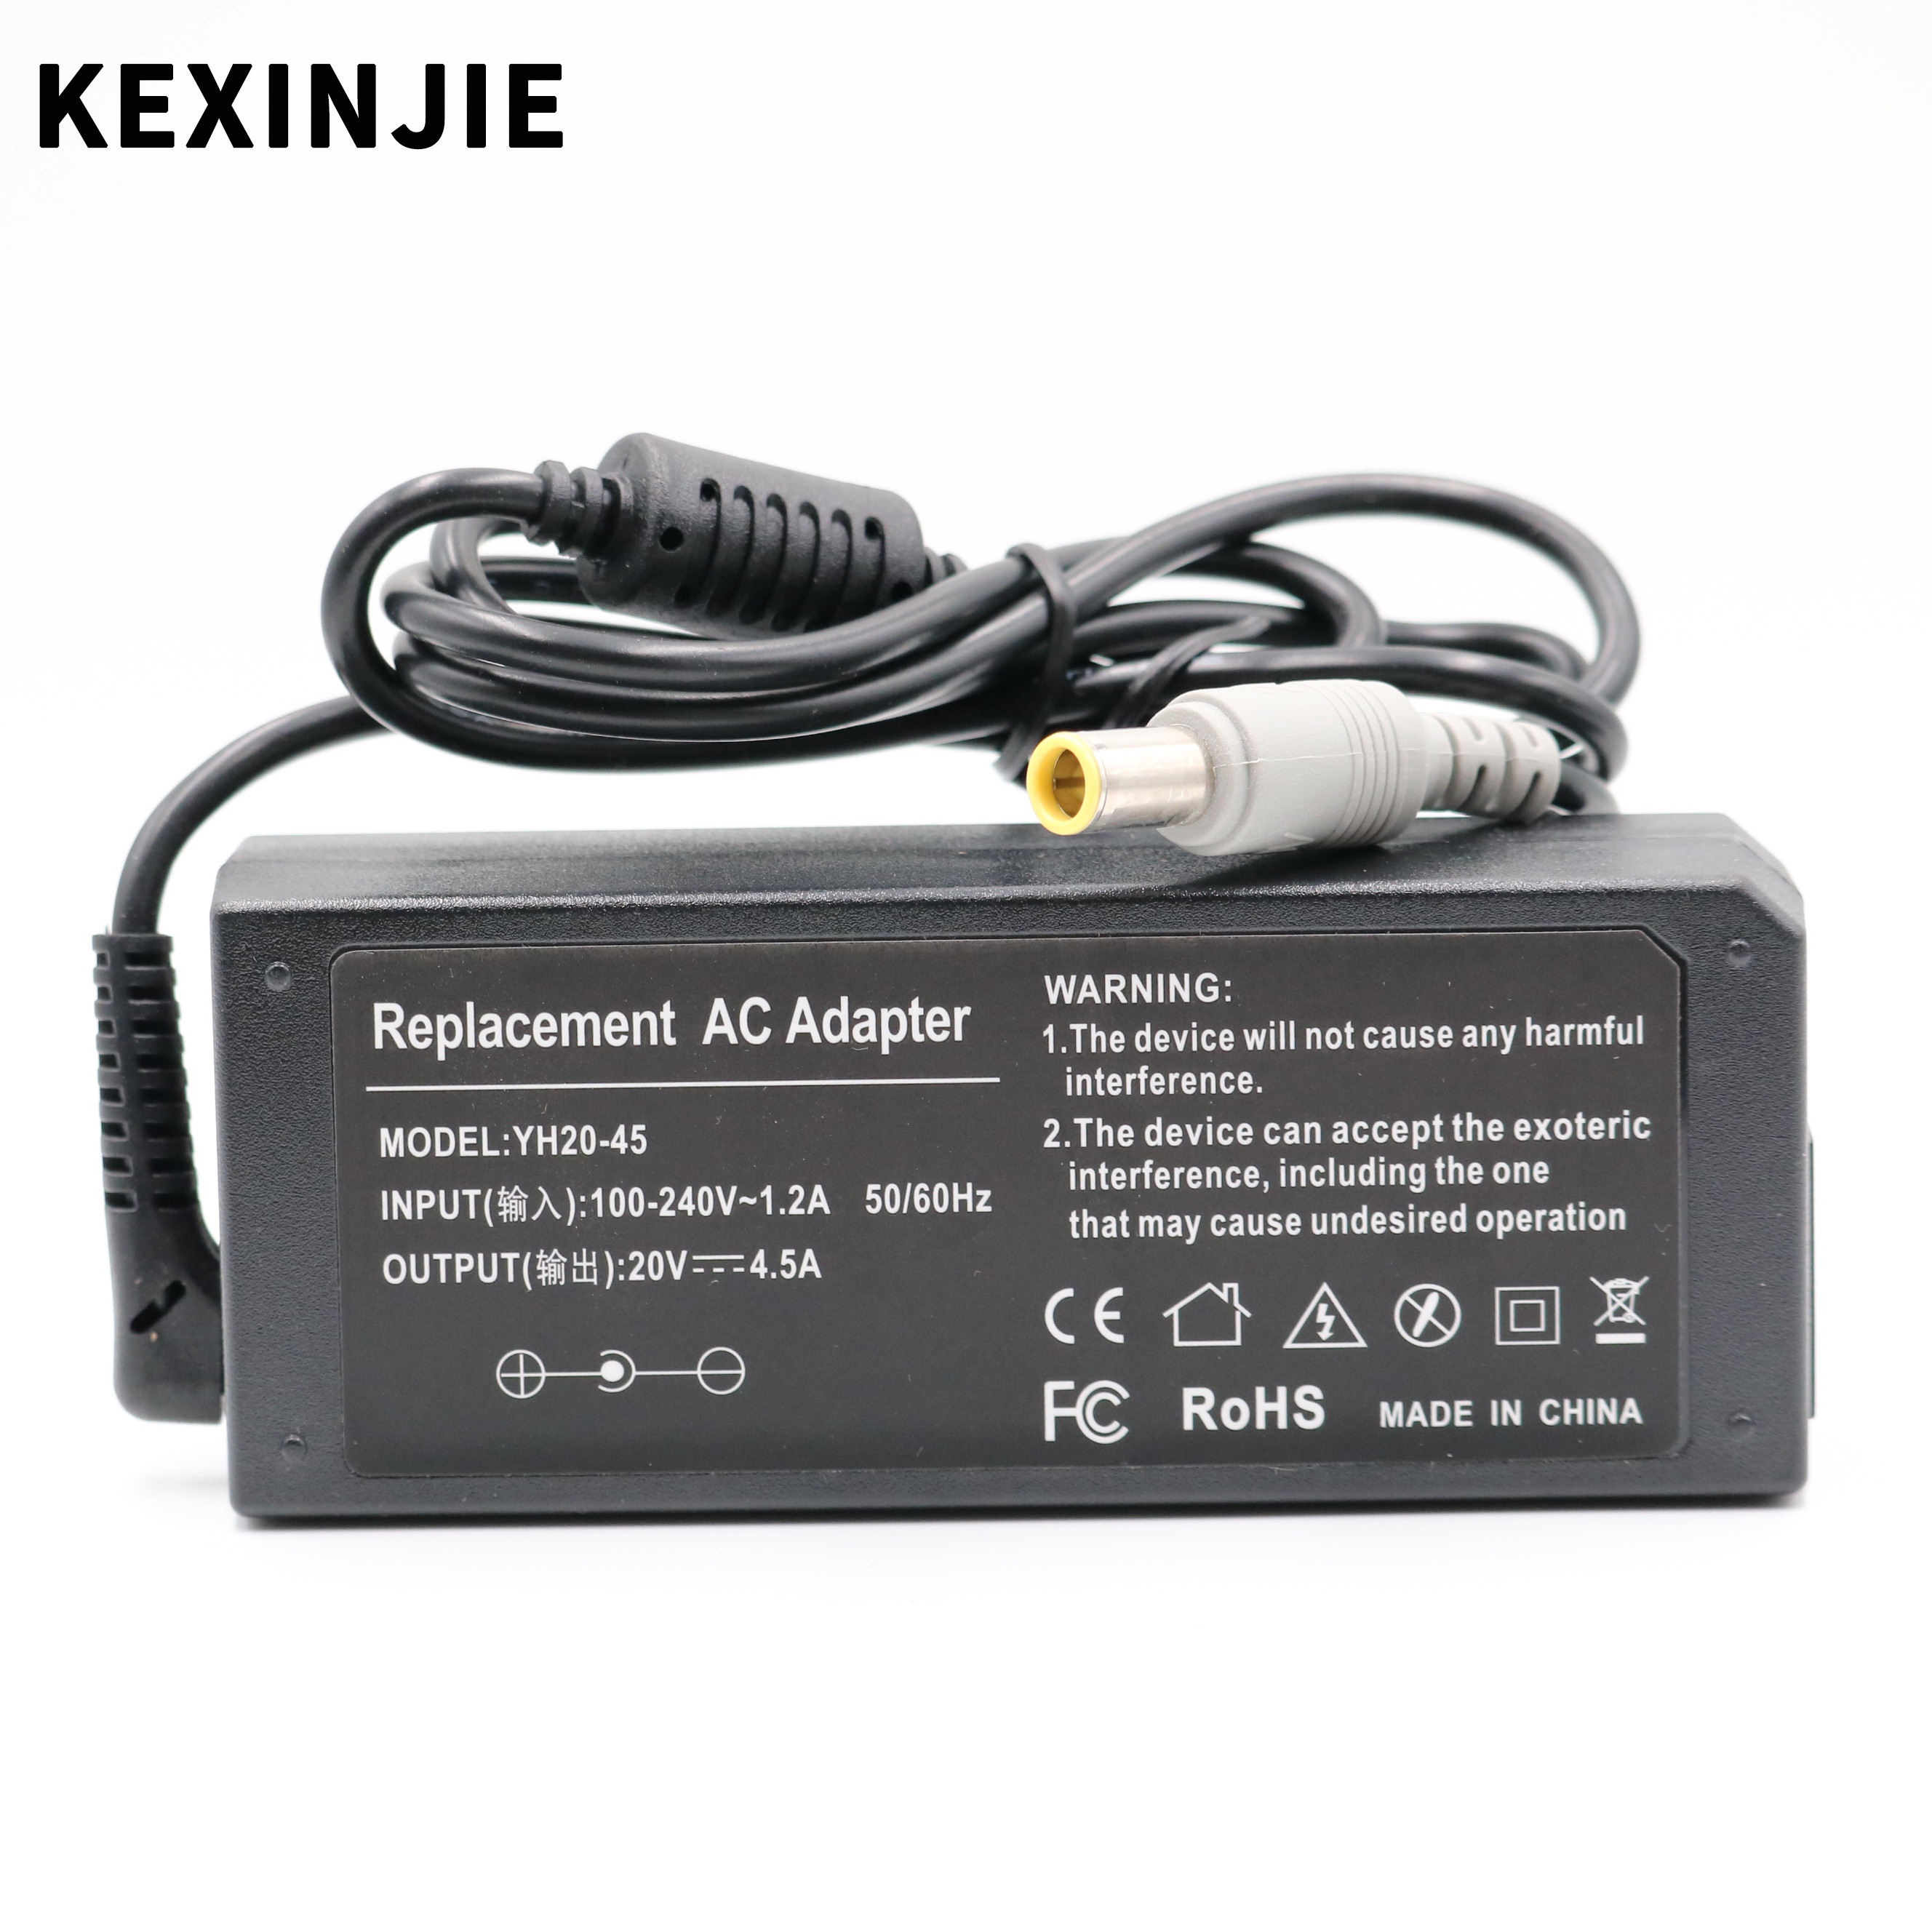 20V 4.5A 90W Replacement AC Adapter Charger For Lenovo Thinkpad E420 E430 T61 T60p Z60T T60 T420 T430 F25 Notebook Power Supply